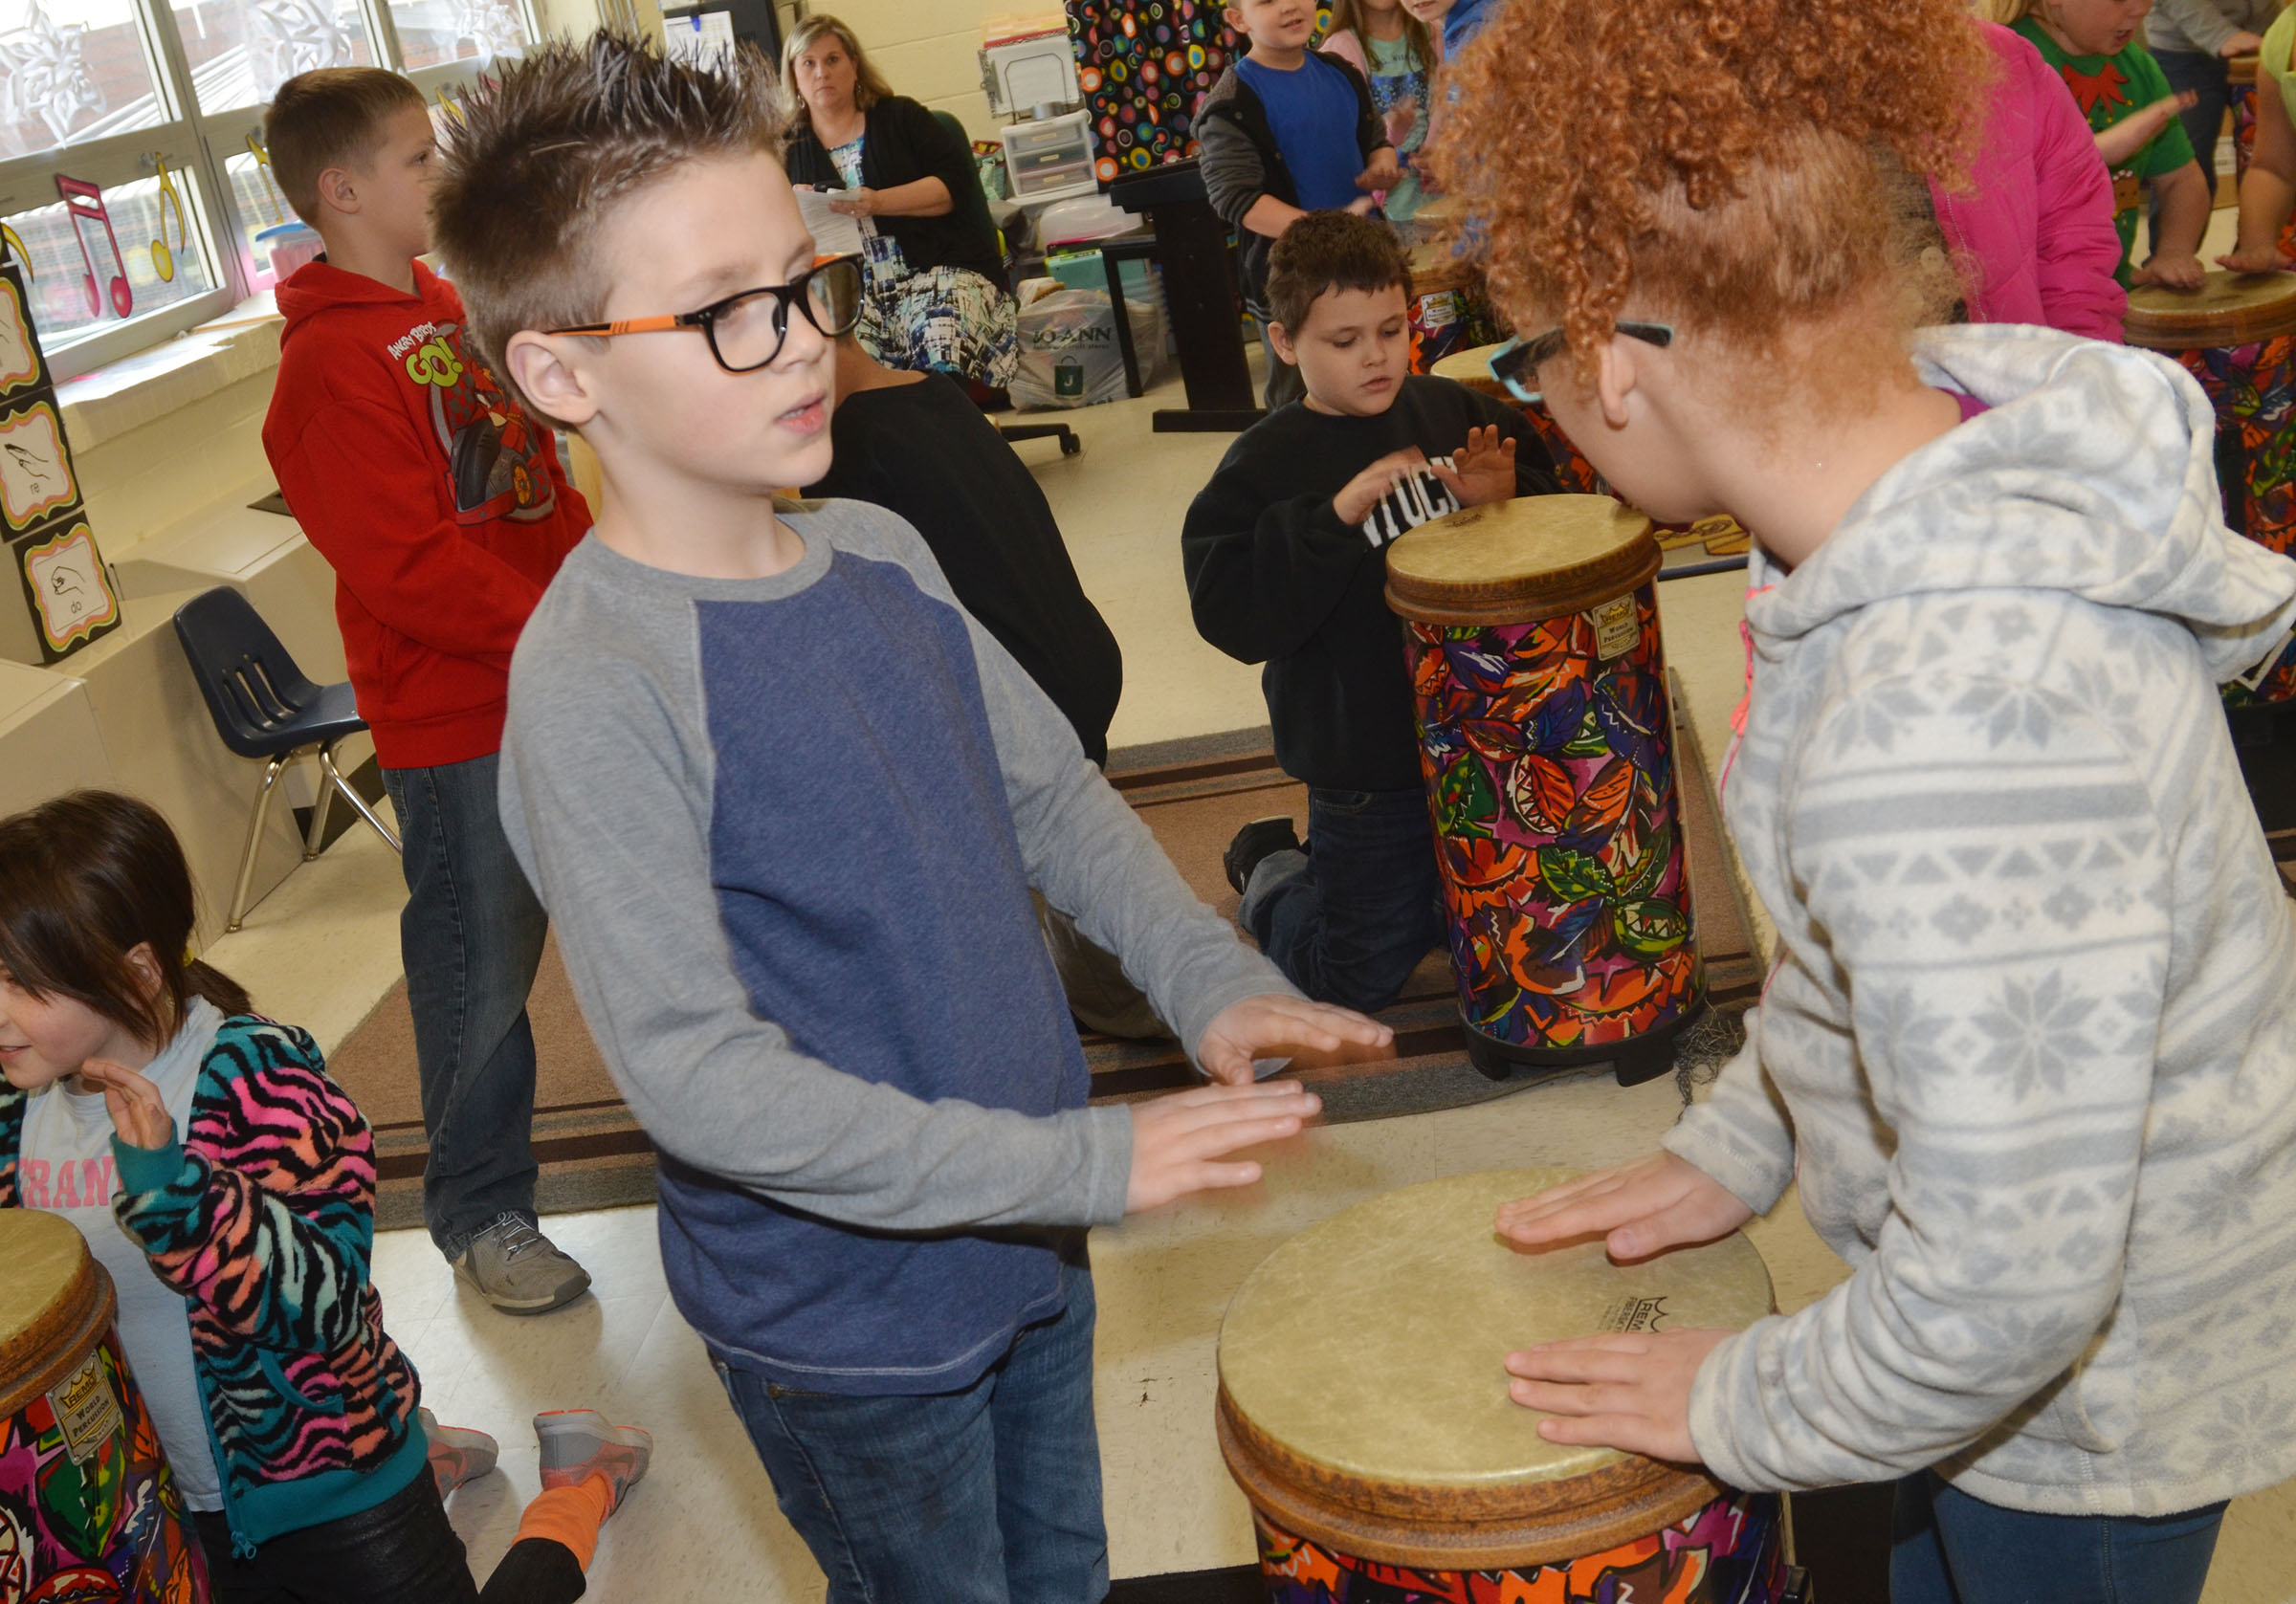 CES second-graders Dalton Shively, at left, and Kallie Taylor practice rhythms on the drums.